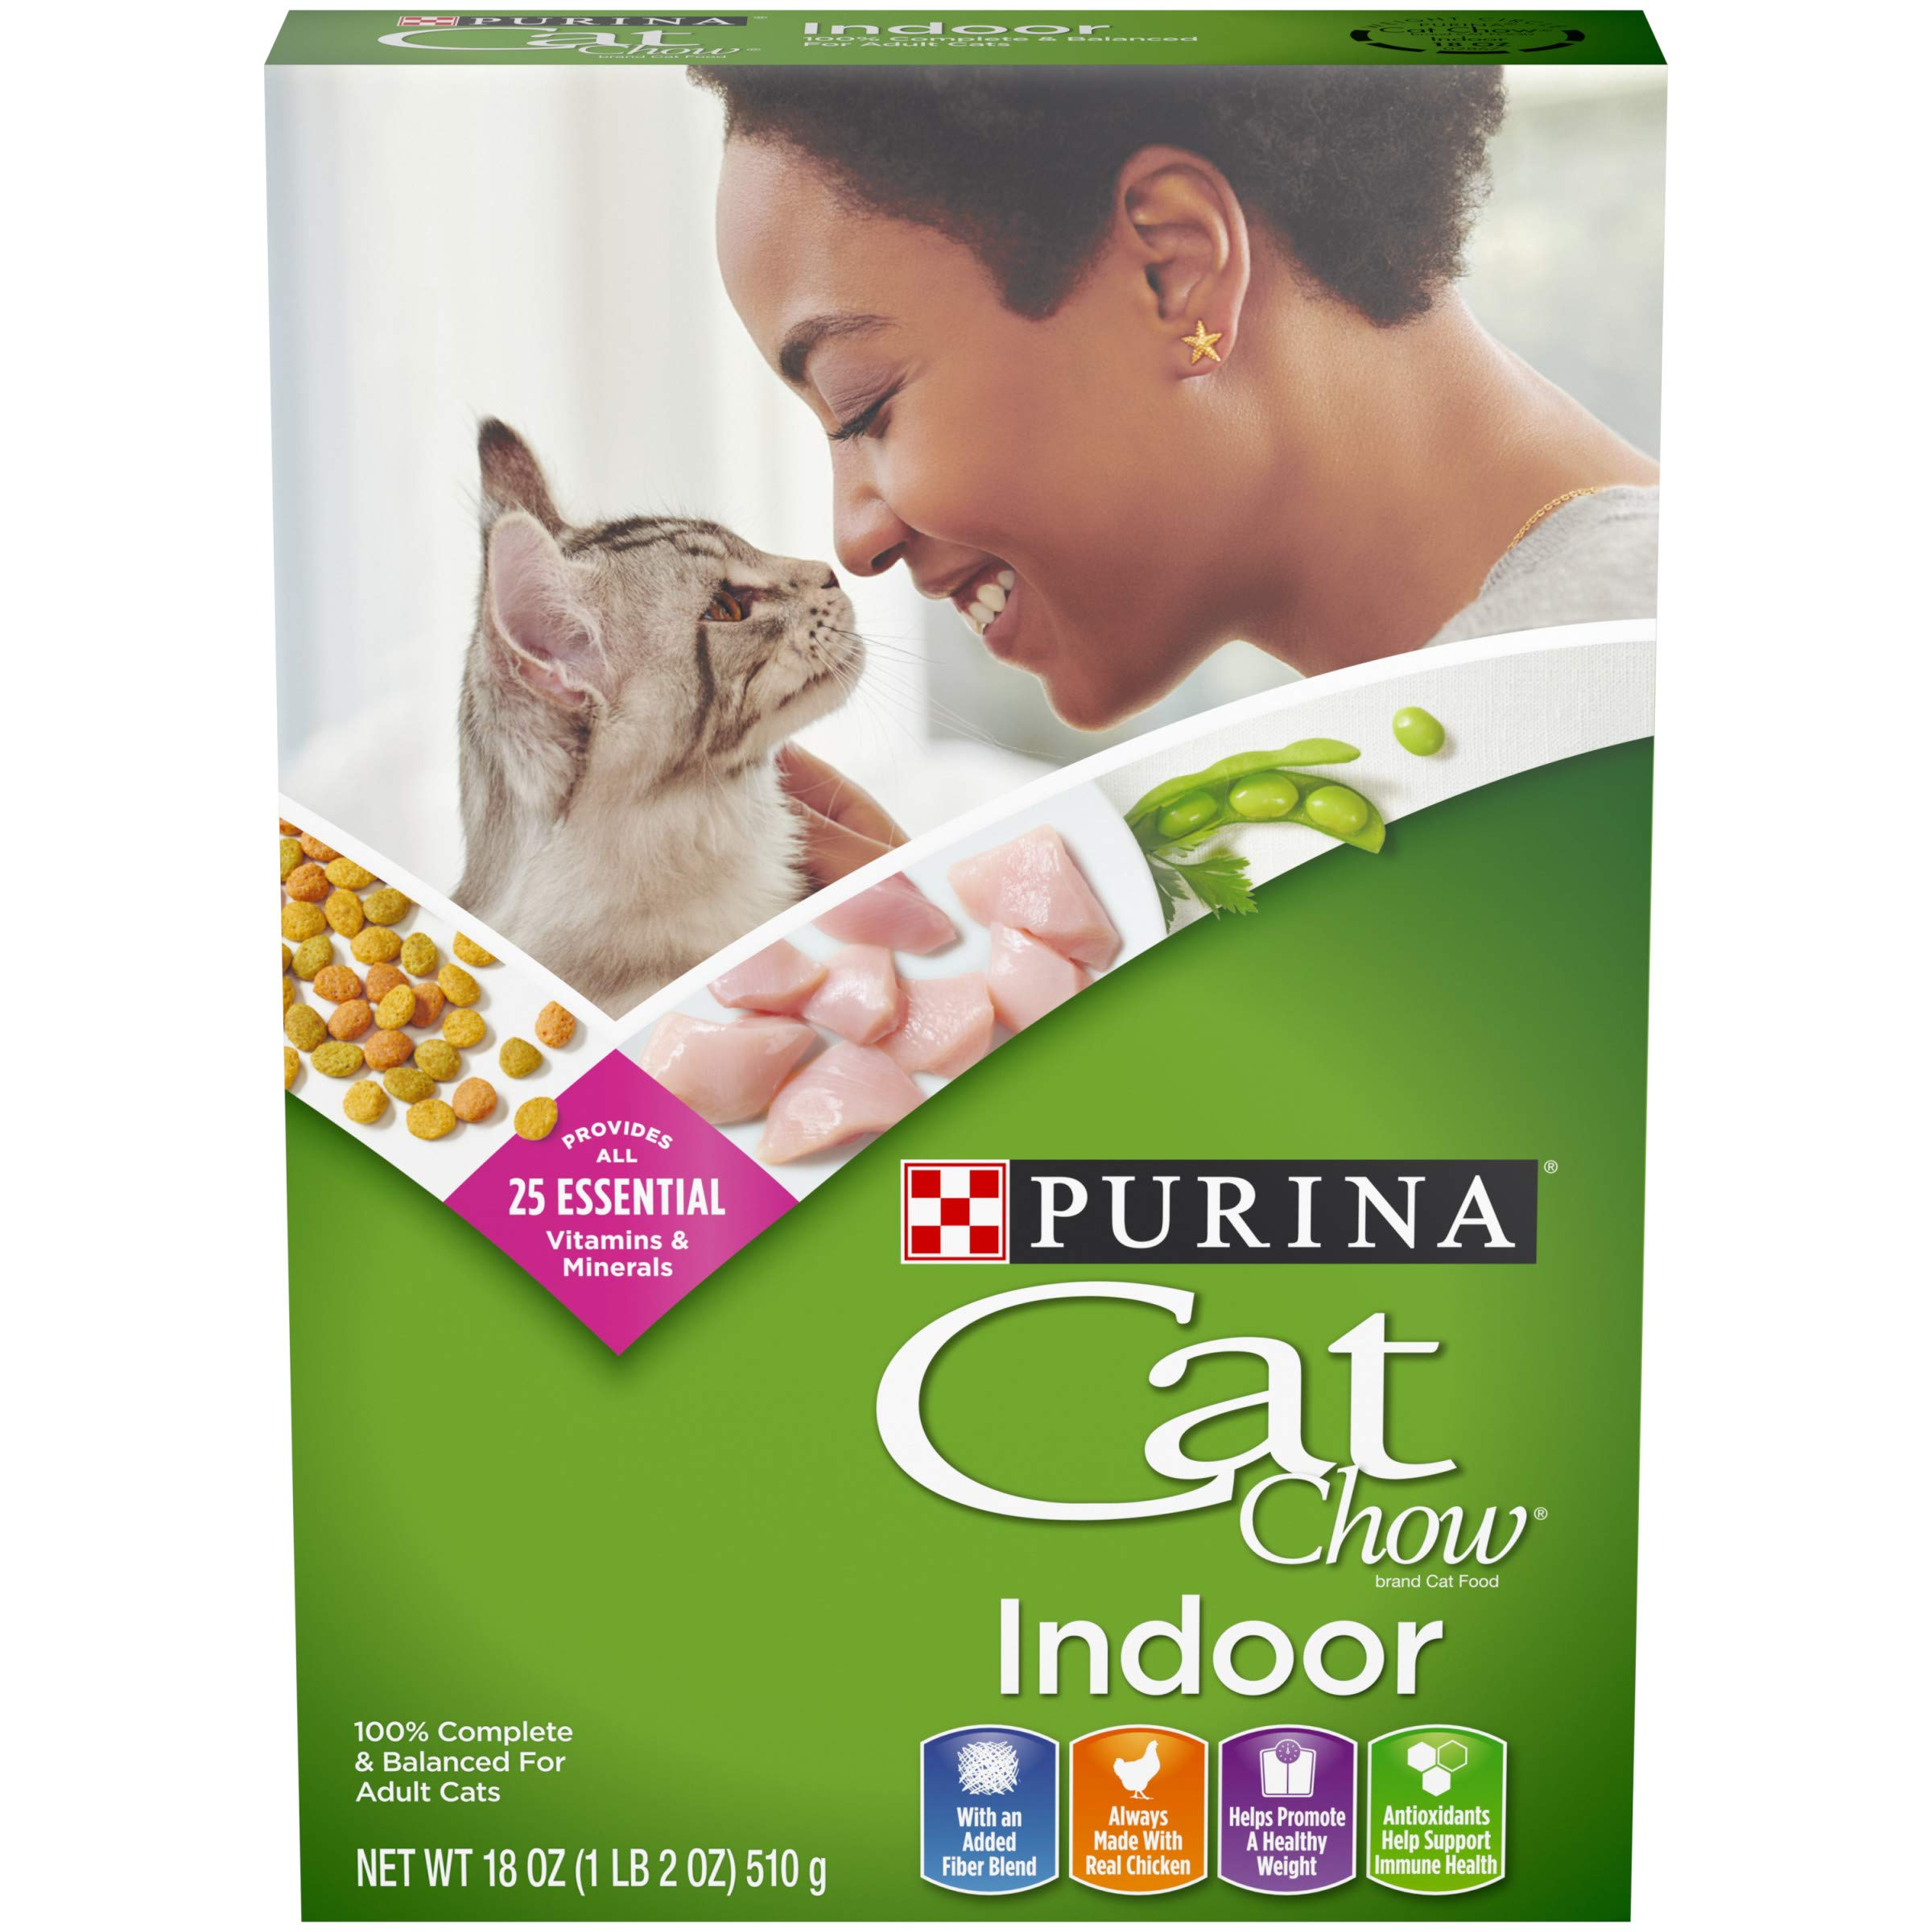 Purina Cat Chow Hairball, Healthy Weight, Indoor Dry Cat Food, Indoor - (12) 18 oz. Boxes by Purina Cat Chow